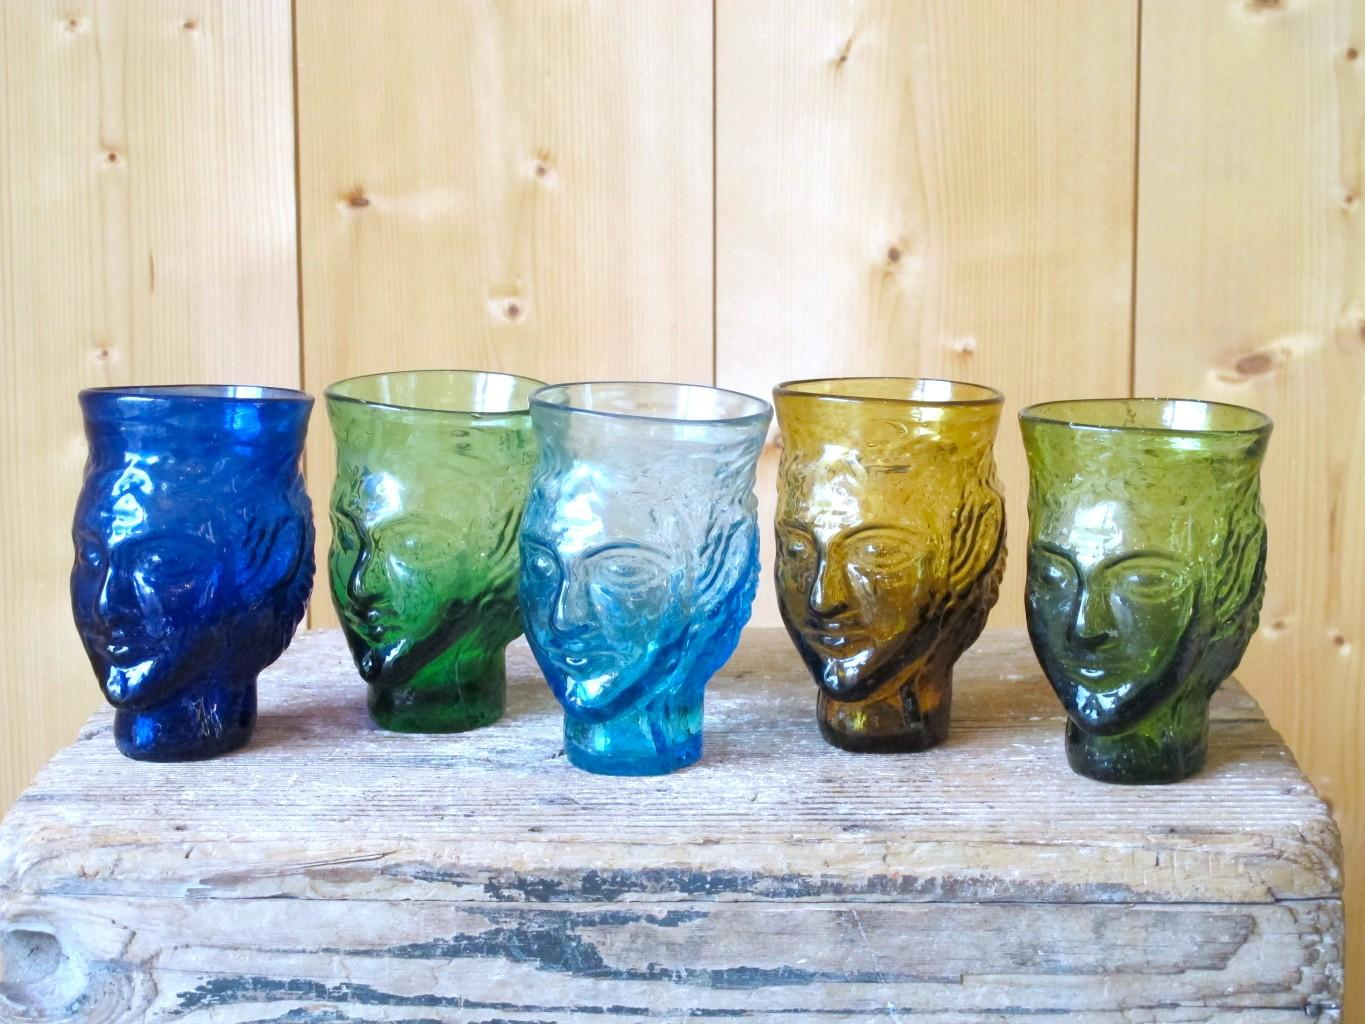 BISTROT_2018_VERRE_TETE_BLUE_GREEN_TURQUOISE_YELLOW_OLIVE_87D17-1